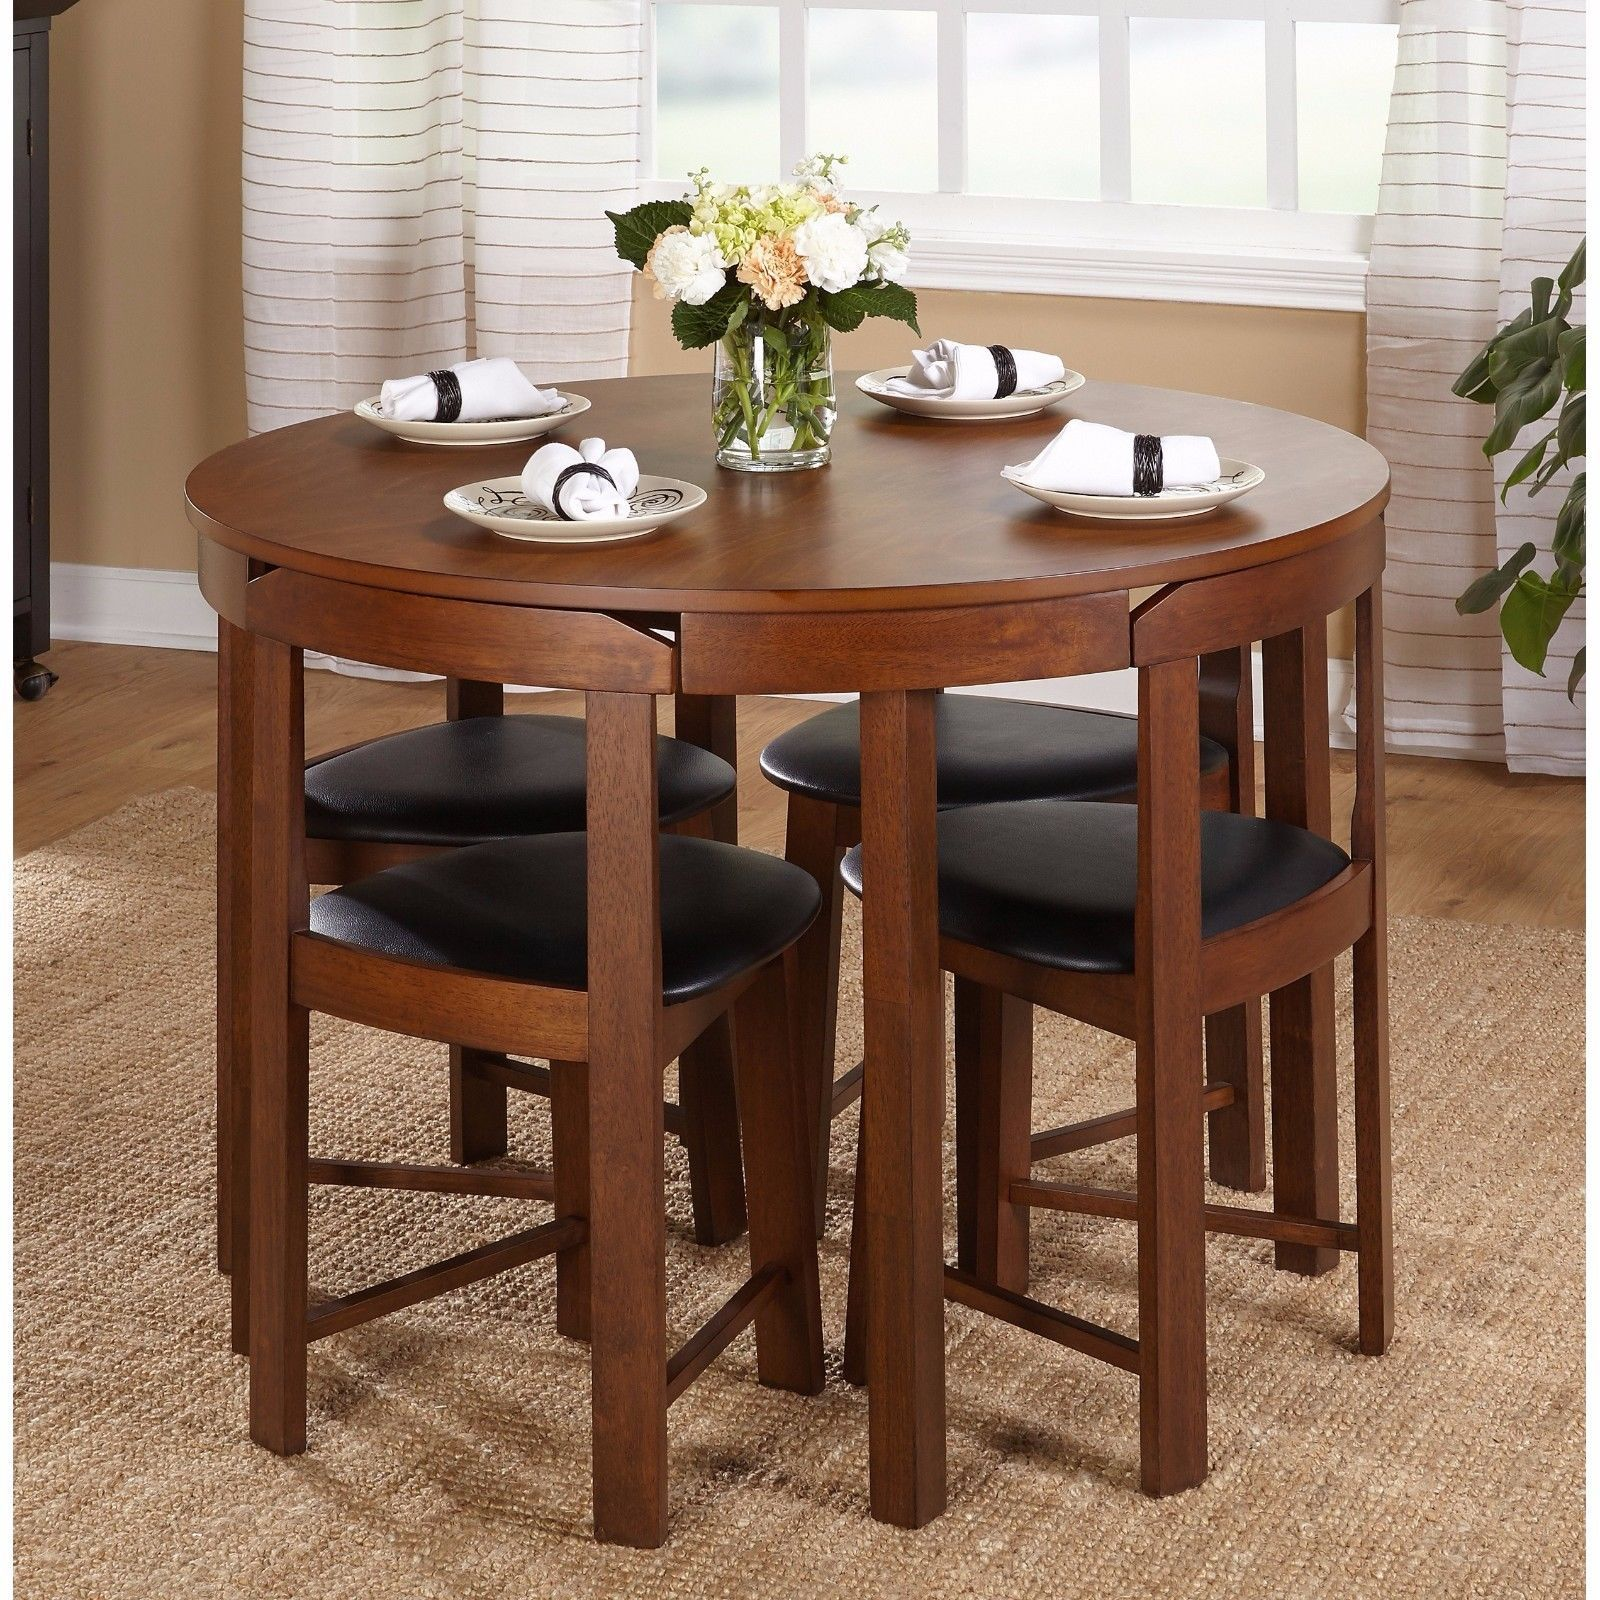 Dining Table Set For 4 Small Spaces Round Kitchen Table and Chairs – Common  Shopping